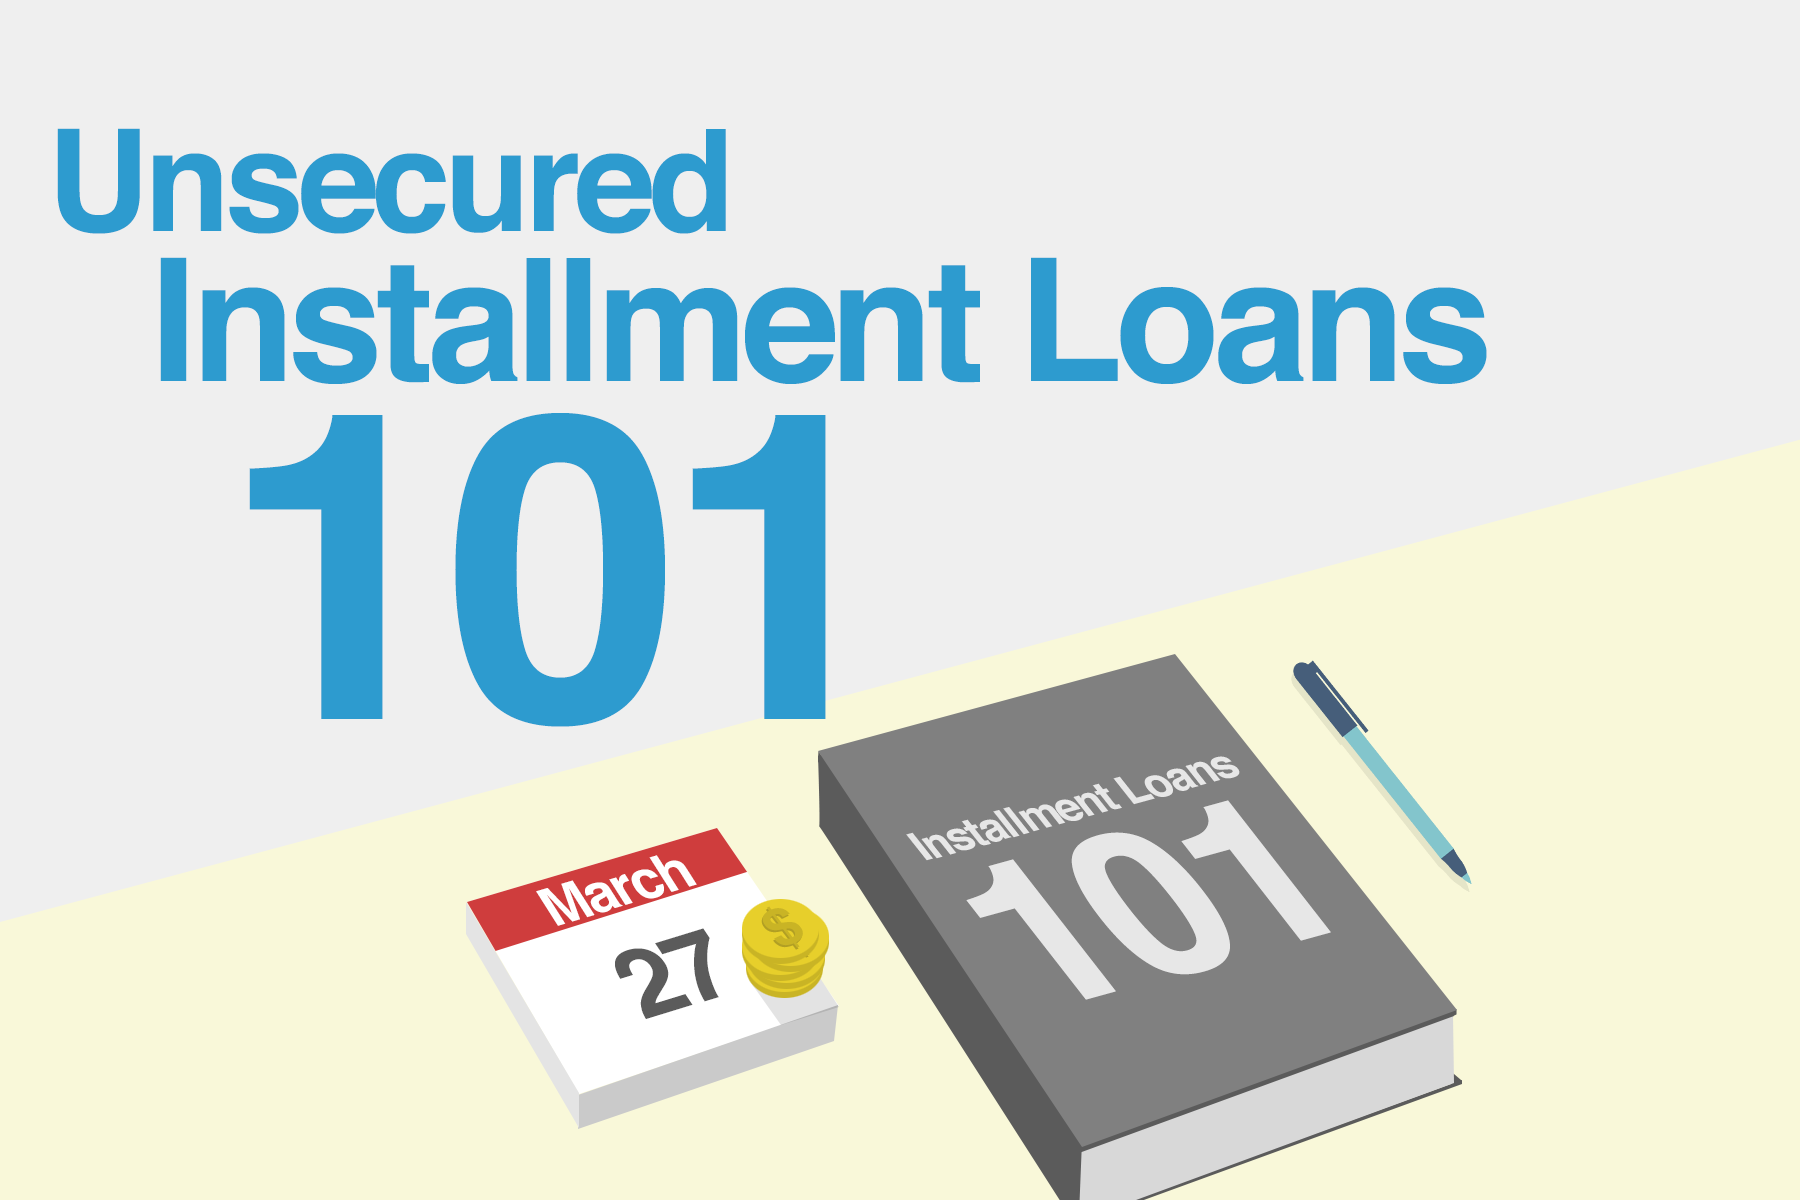 unsecured installment loans 101